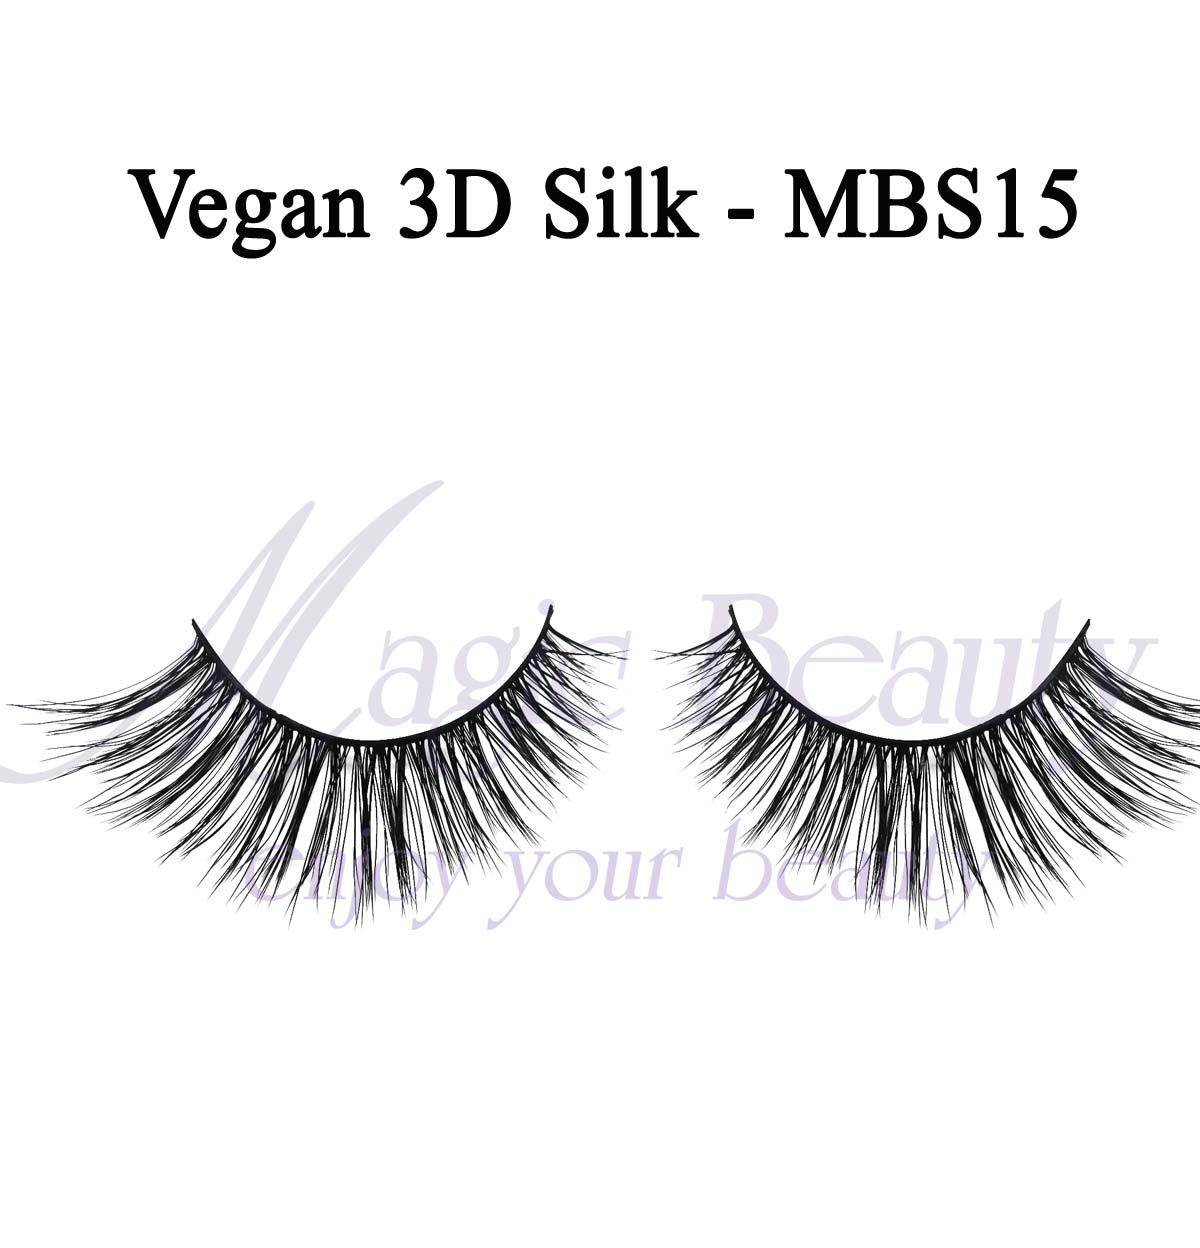 Vegan 3D Silk Lashes-MBS15 Made of Korean PBT Fiber and multilayers